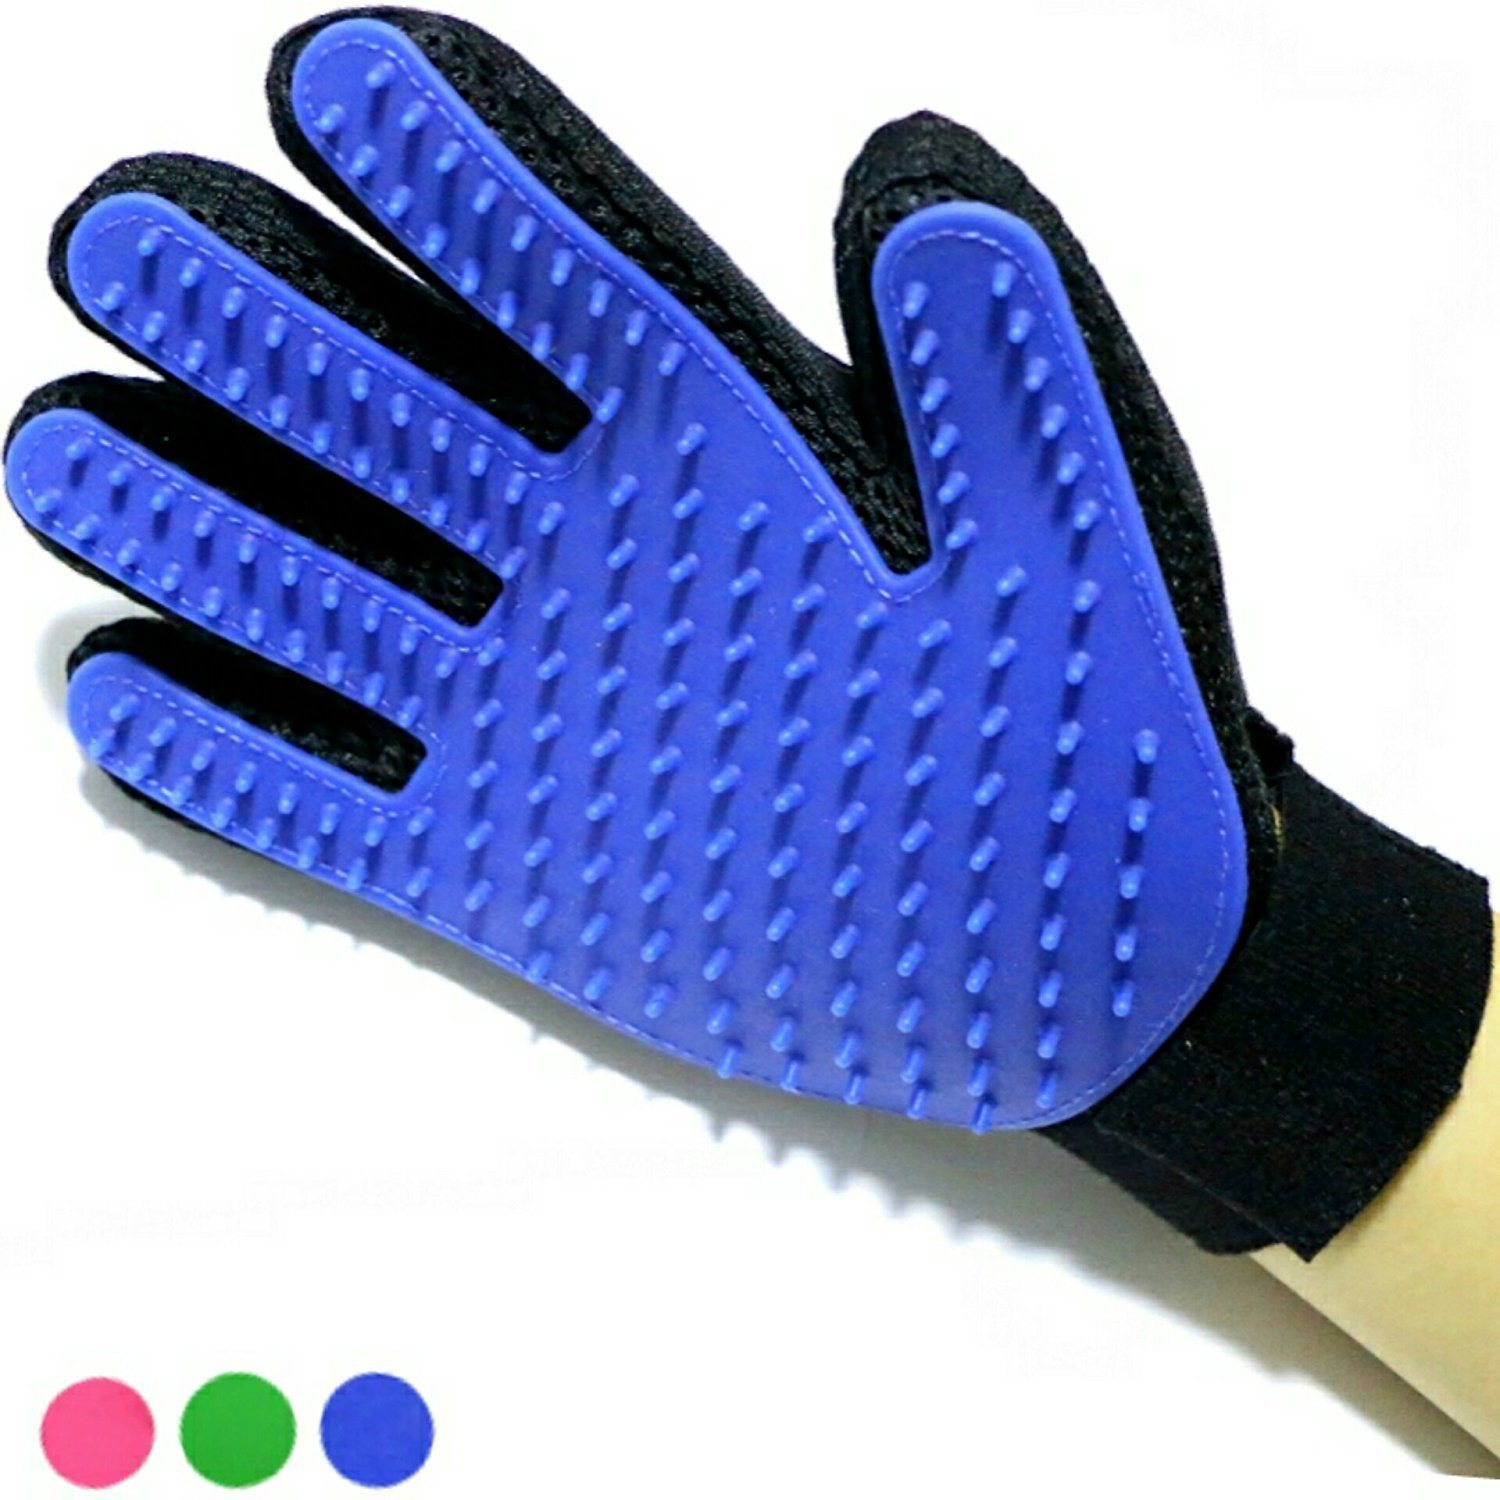 True Touch Deshedding Glove for Gentle Efficient Pet Dog Cat Grooming Glove Brush Mitt Shedding Glove Tool Pet Hair Remover Pet Massage Glove Bathing Brush COM